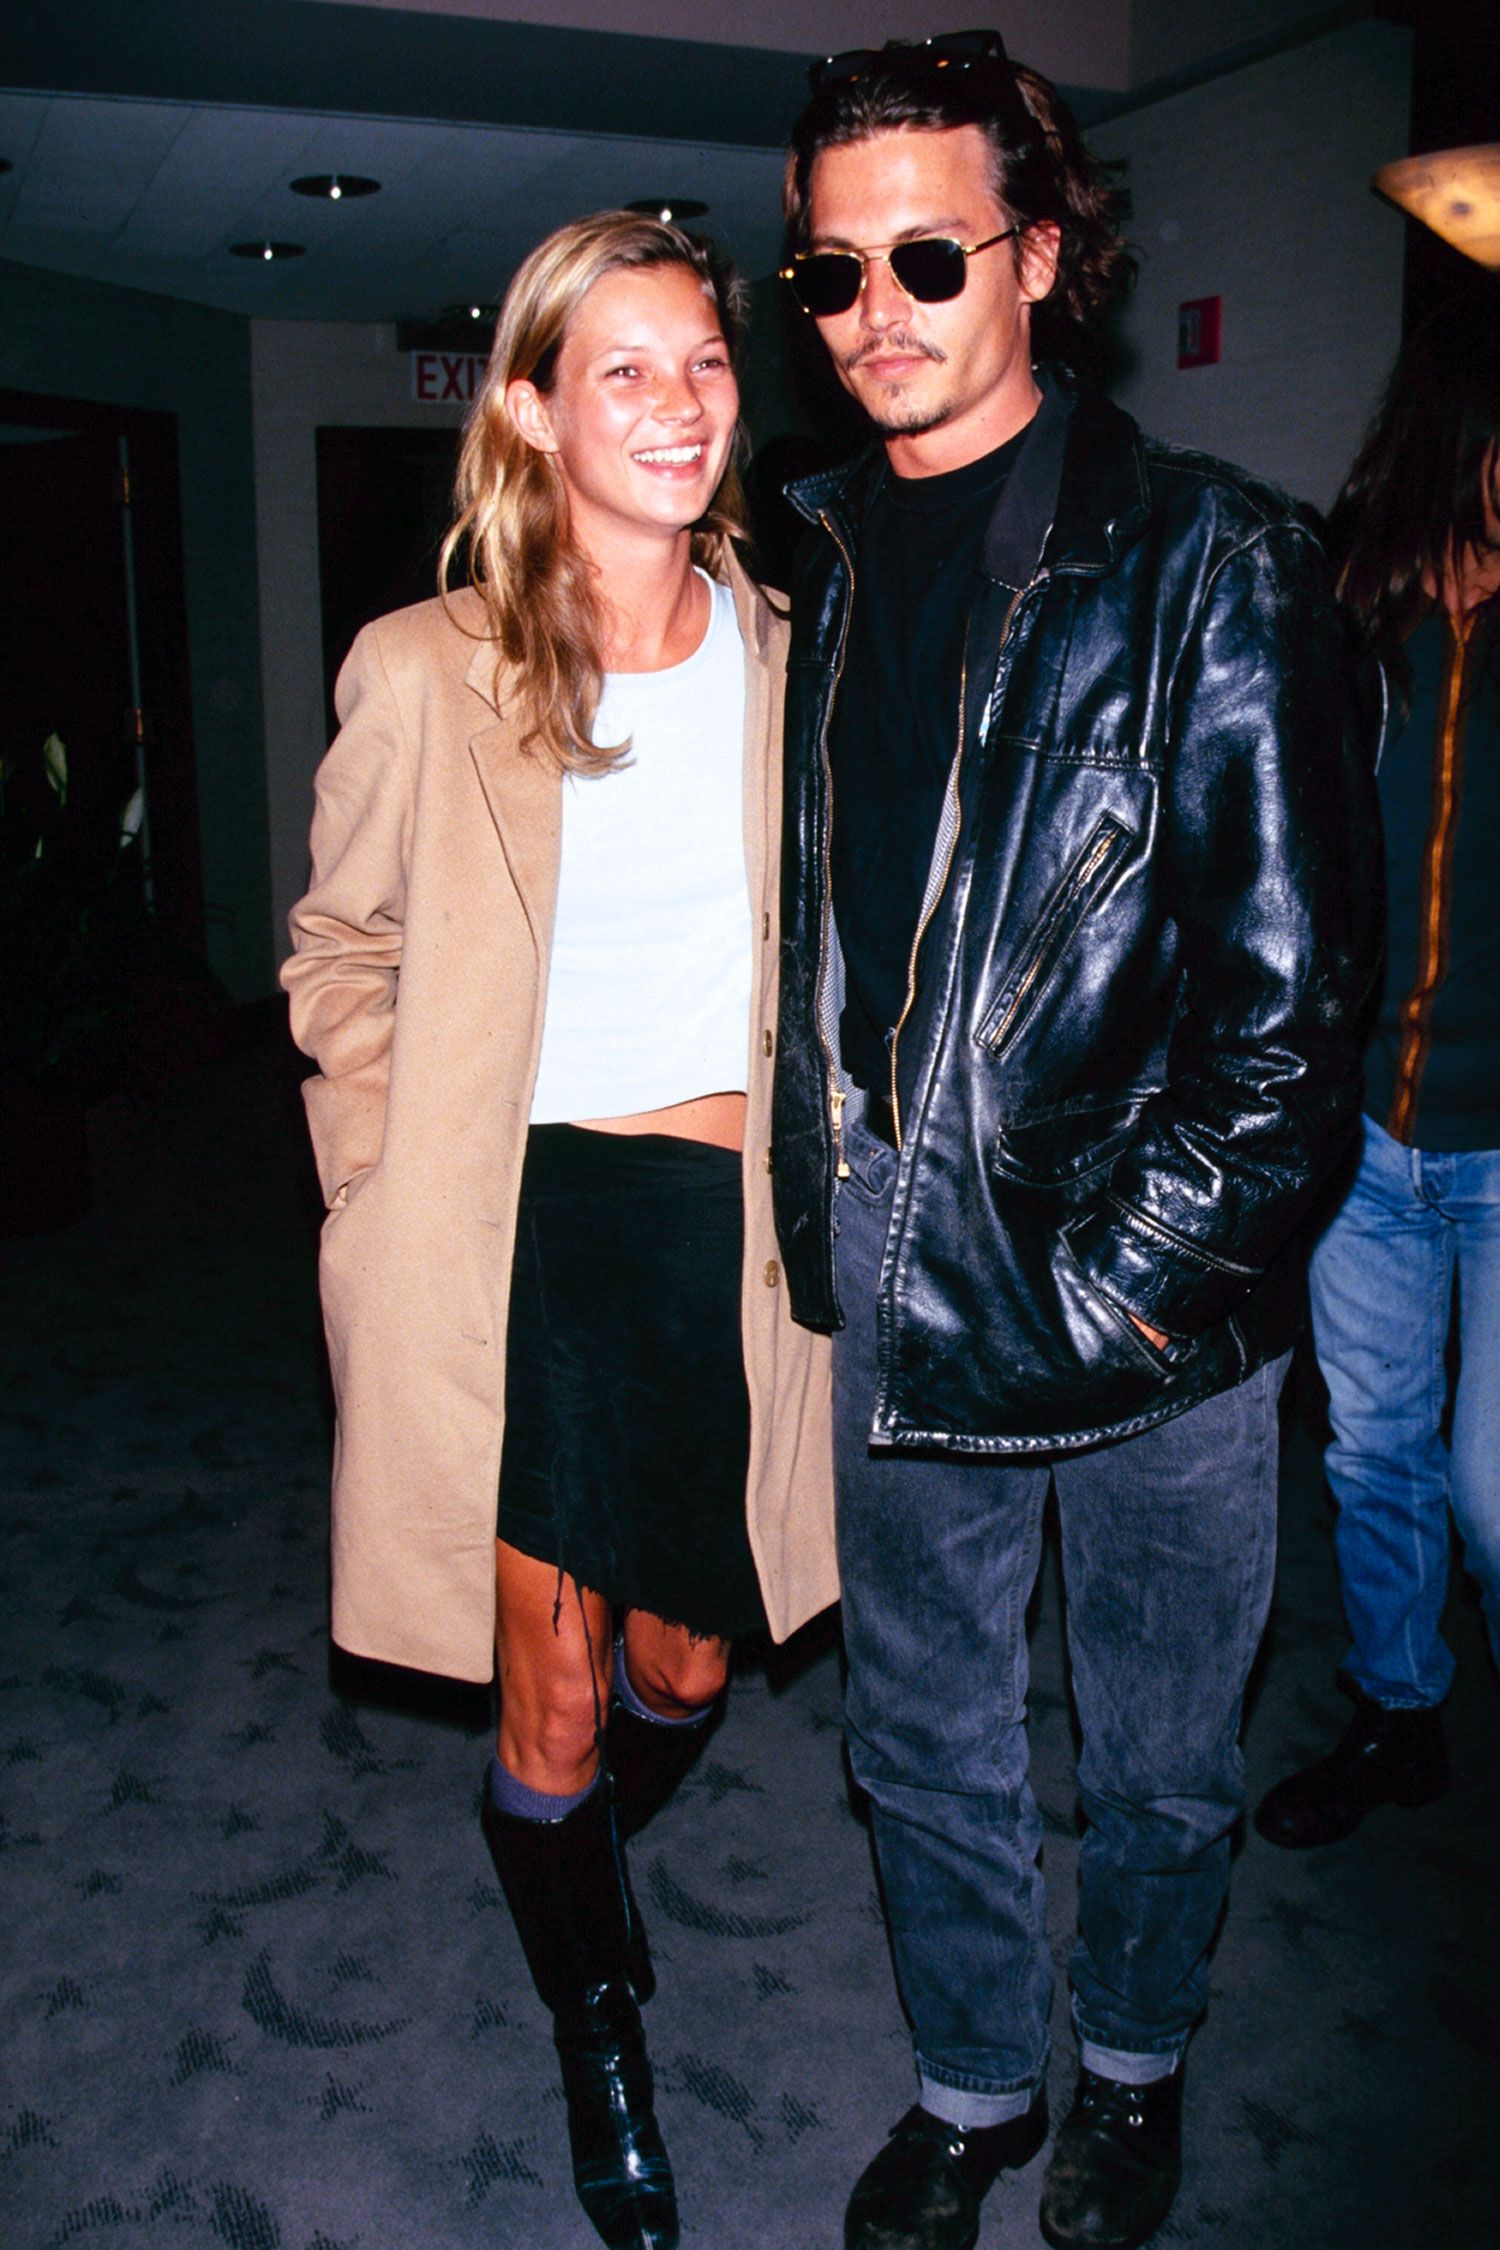 Johnny Depp Kate Moss Tumblr Images Galleries With A Bite